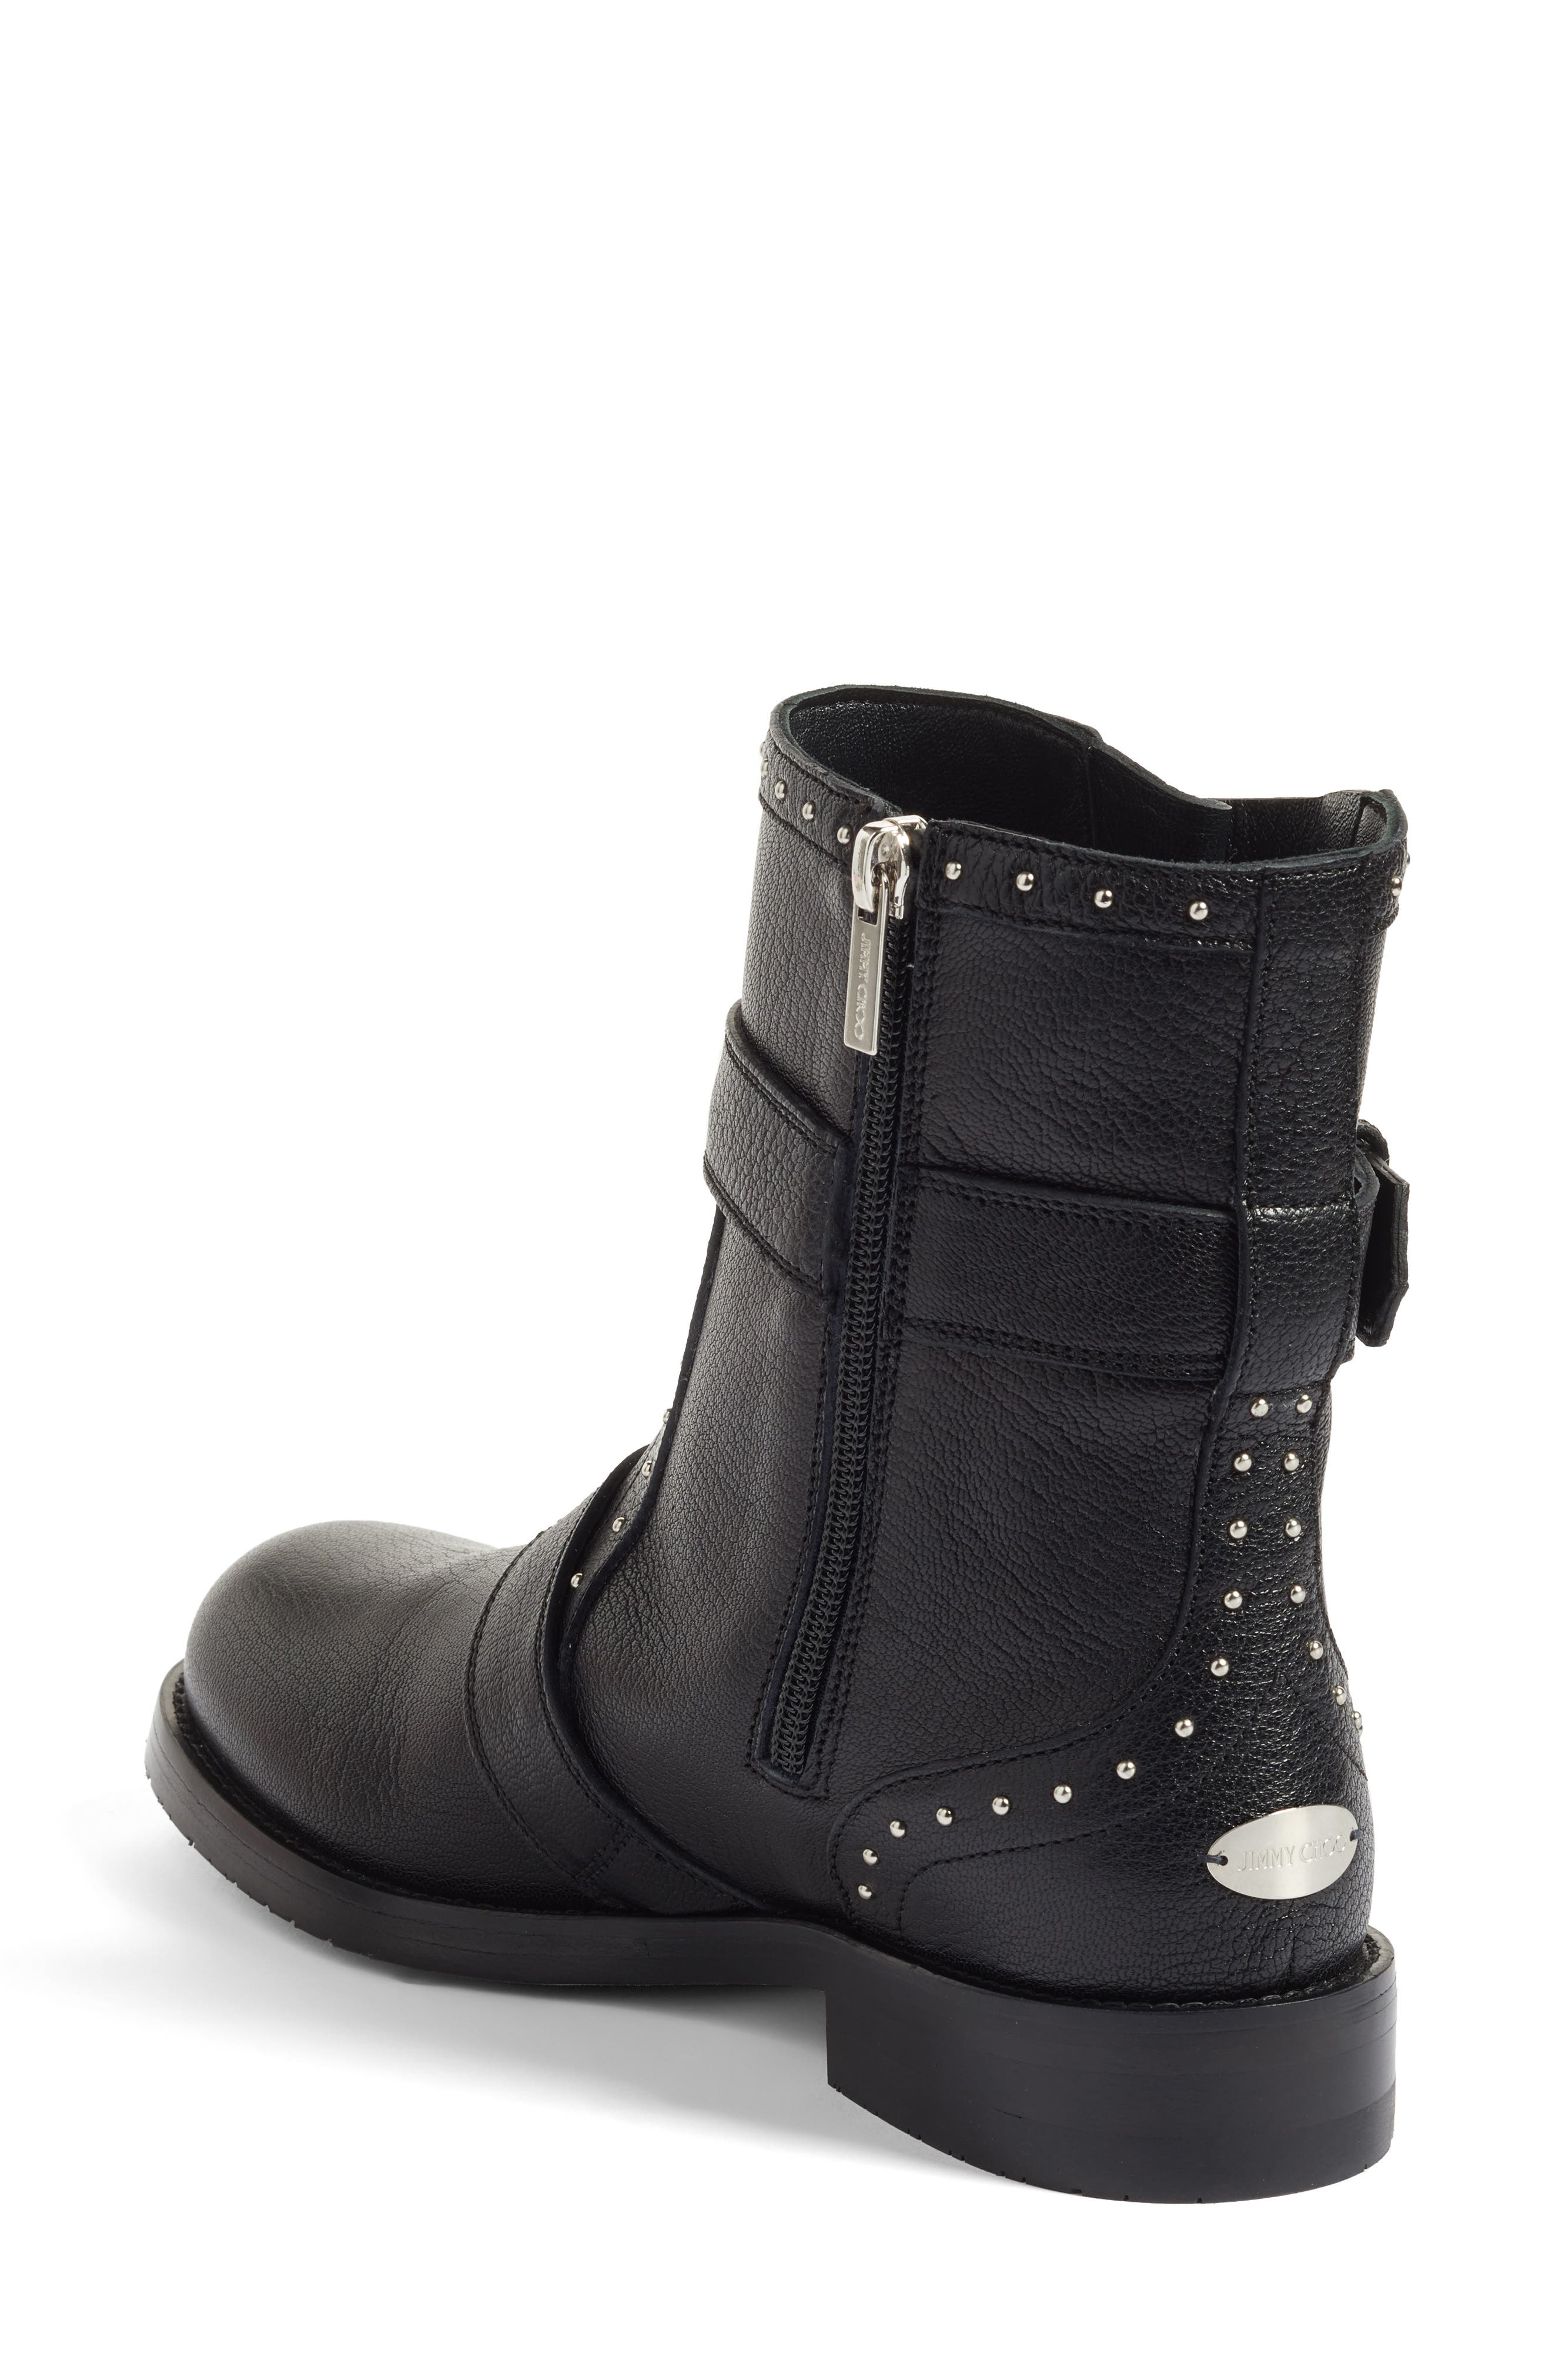 Blyss Combat Boot,                             Alternate thumbnail 2, color,                             001